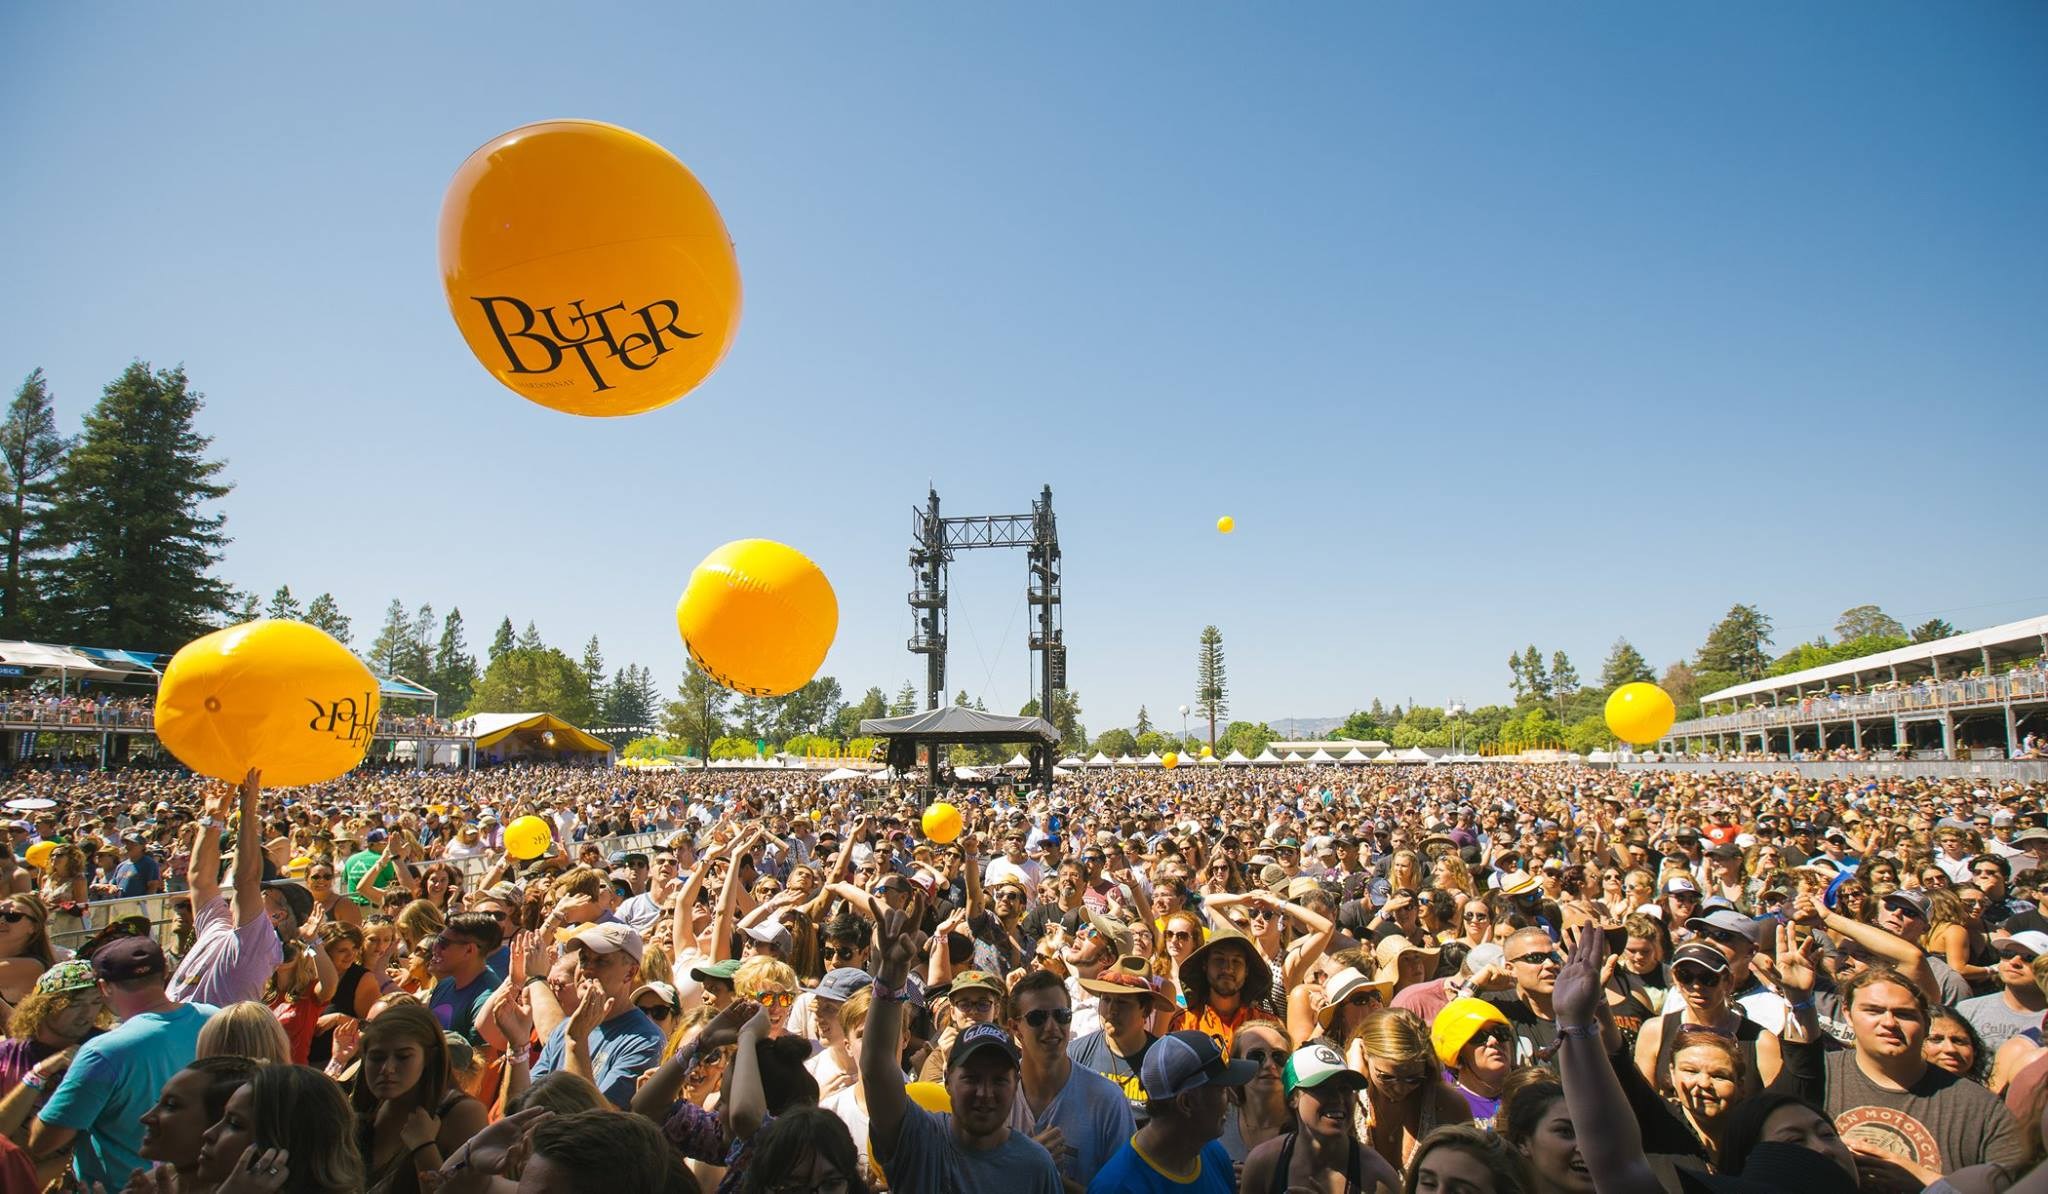 Last year's BottleRock